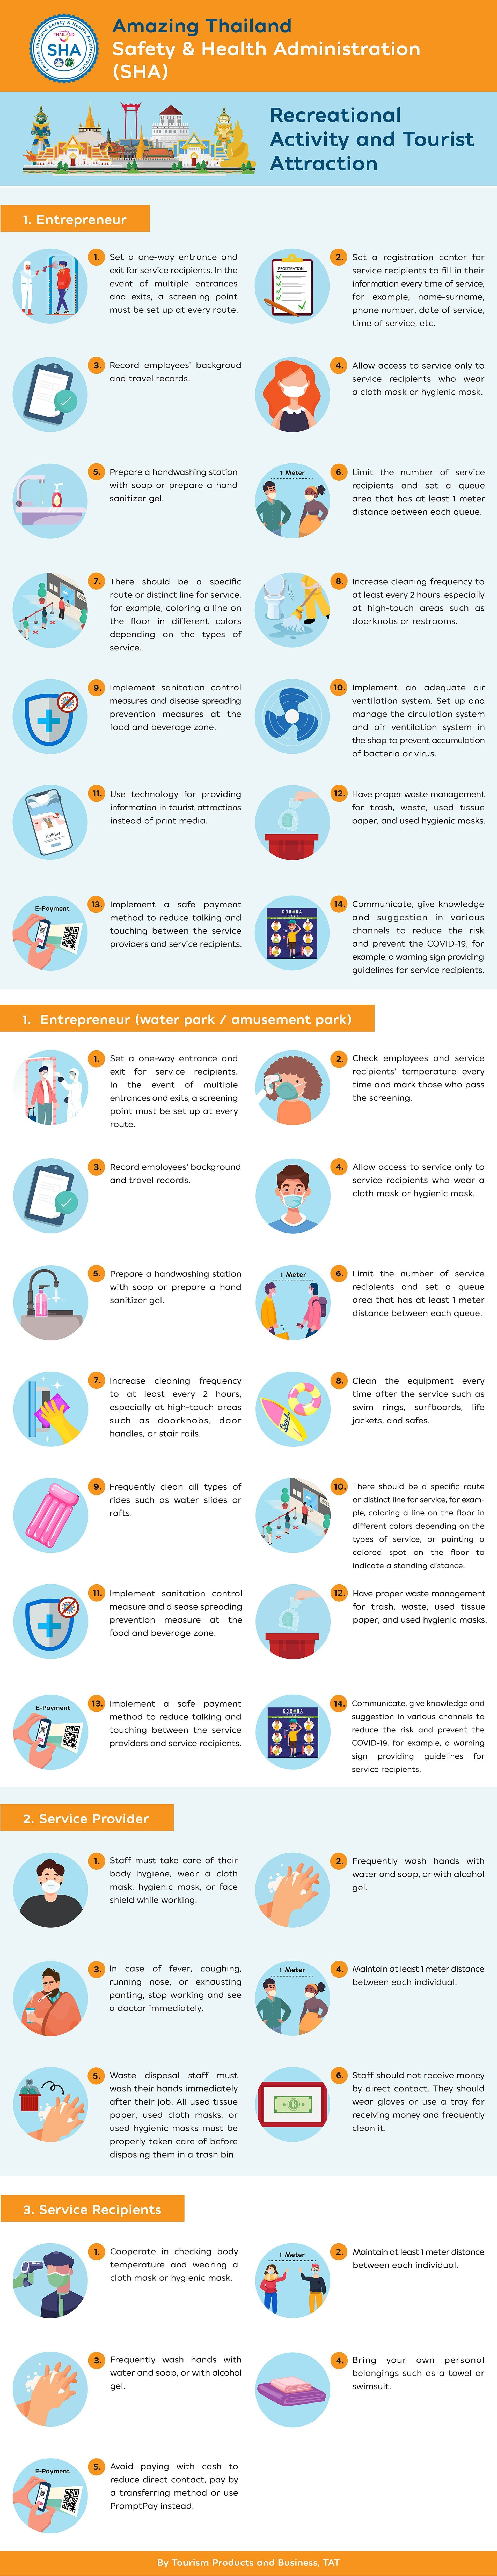 Amazing Thailand Safety and Health Administration Guideline Infographic for Recreational Activity and Tourist Attraction